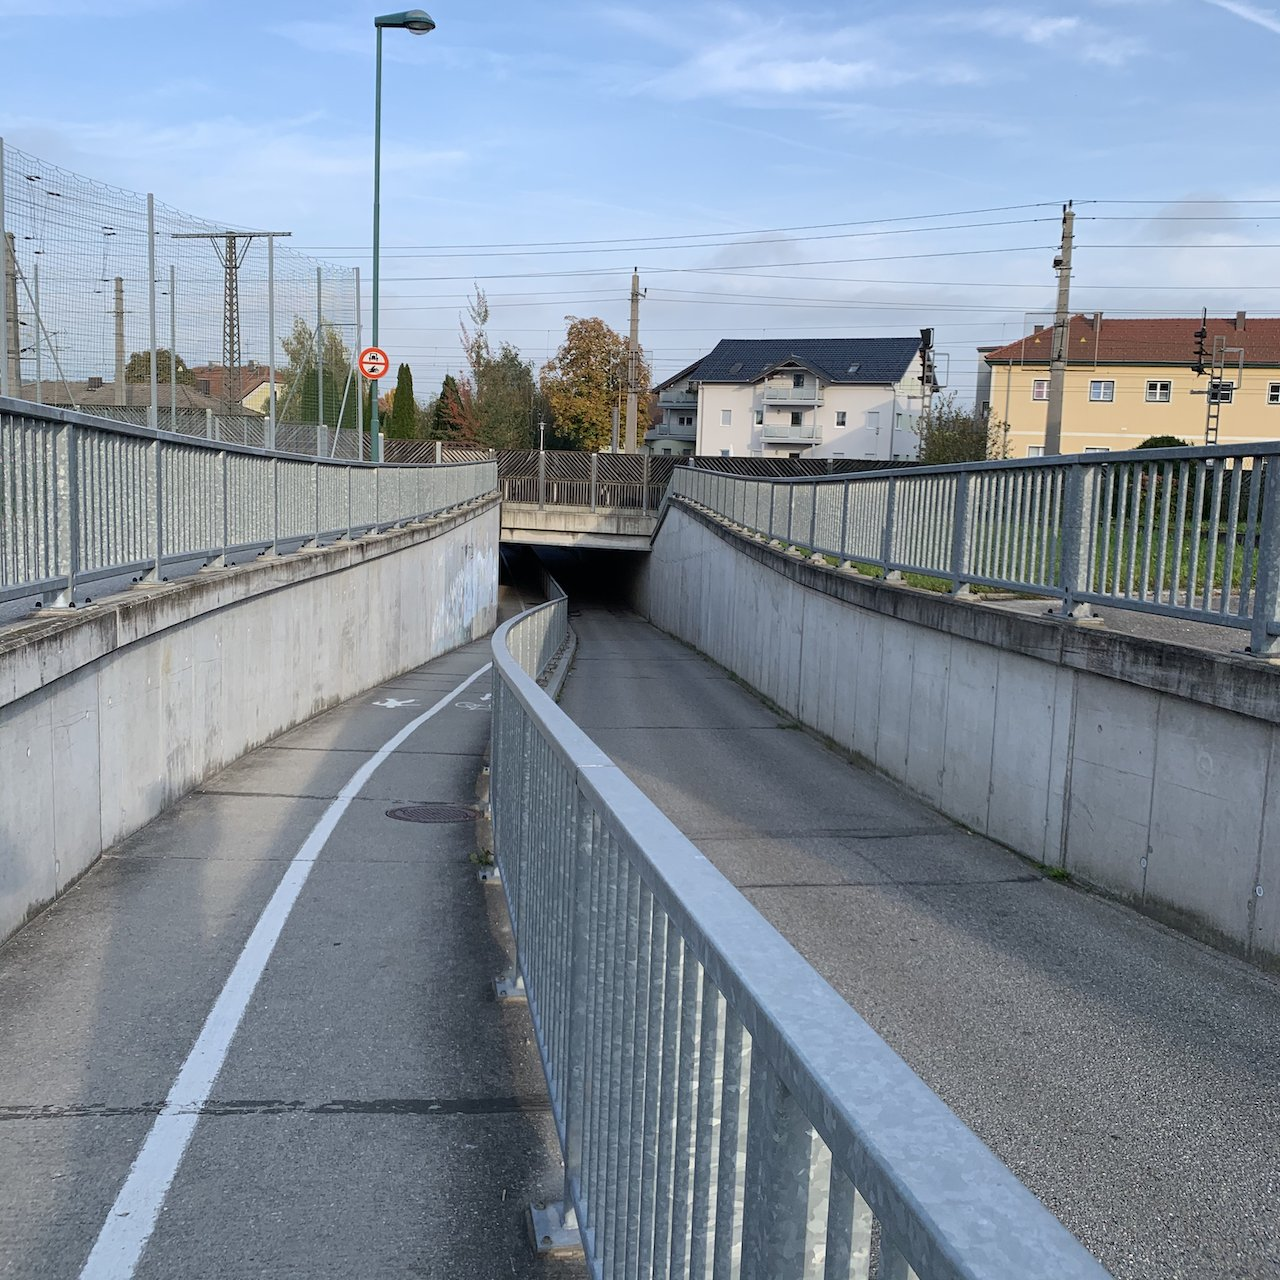 Geocache under the rail lines - No access to the rails from anywhere close - itstartswithacoffee.com  #geocache #geocaching  #geocachingAustria #geocachingAT #rail